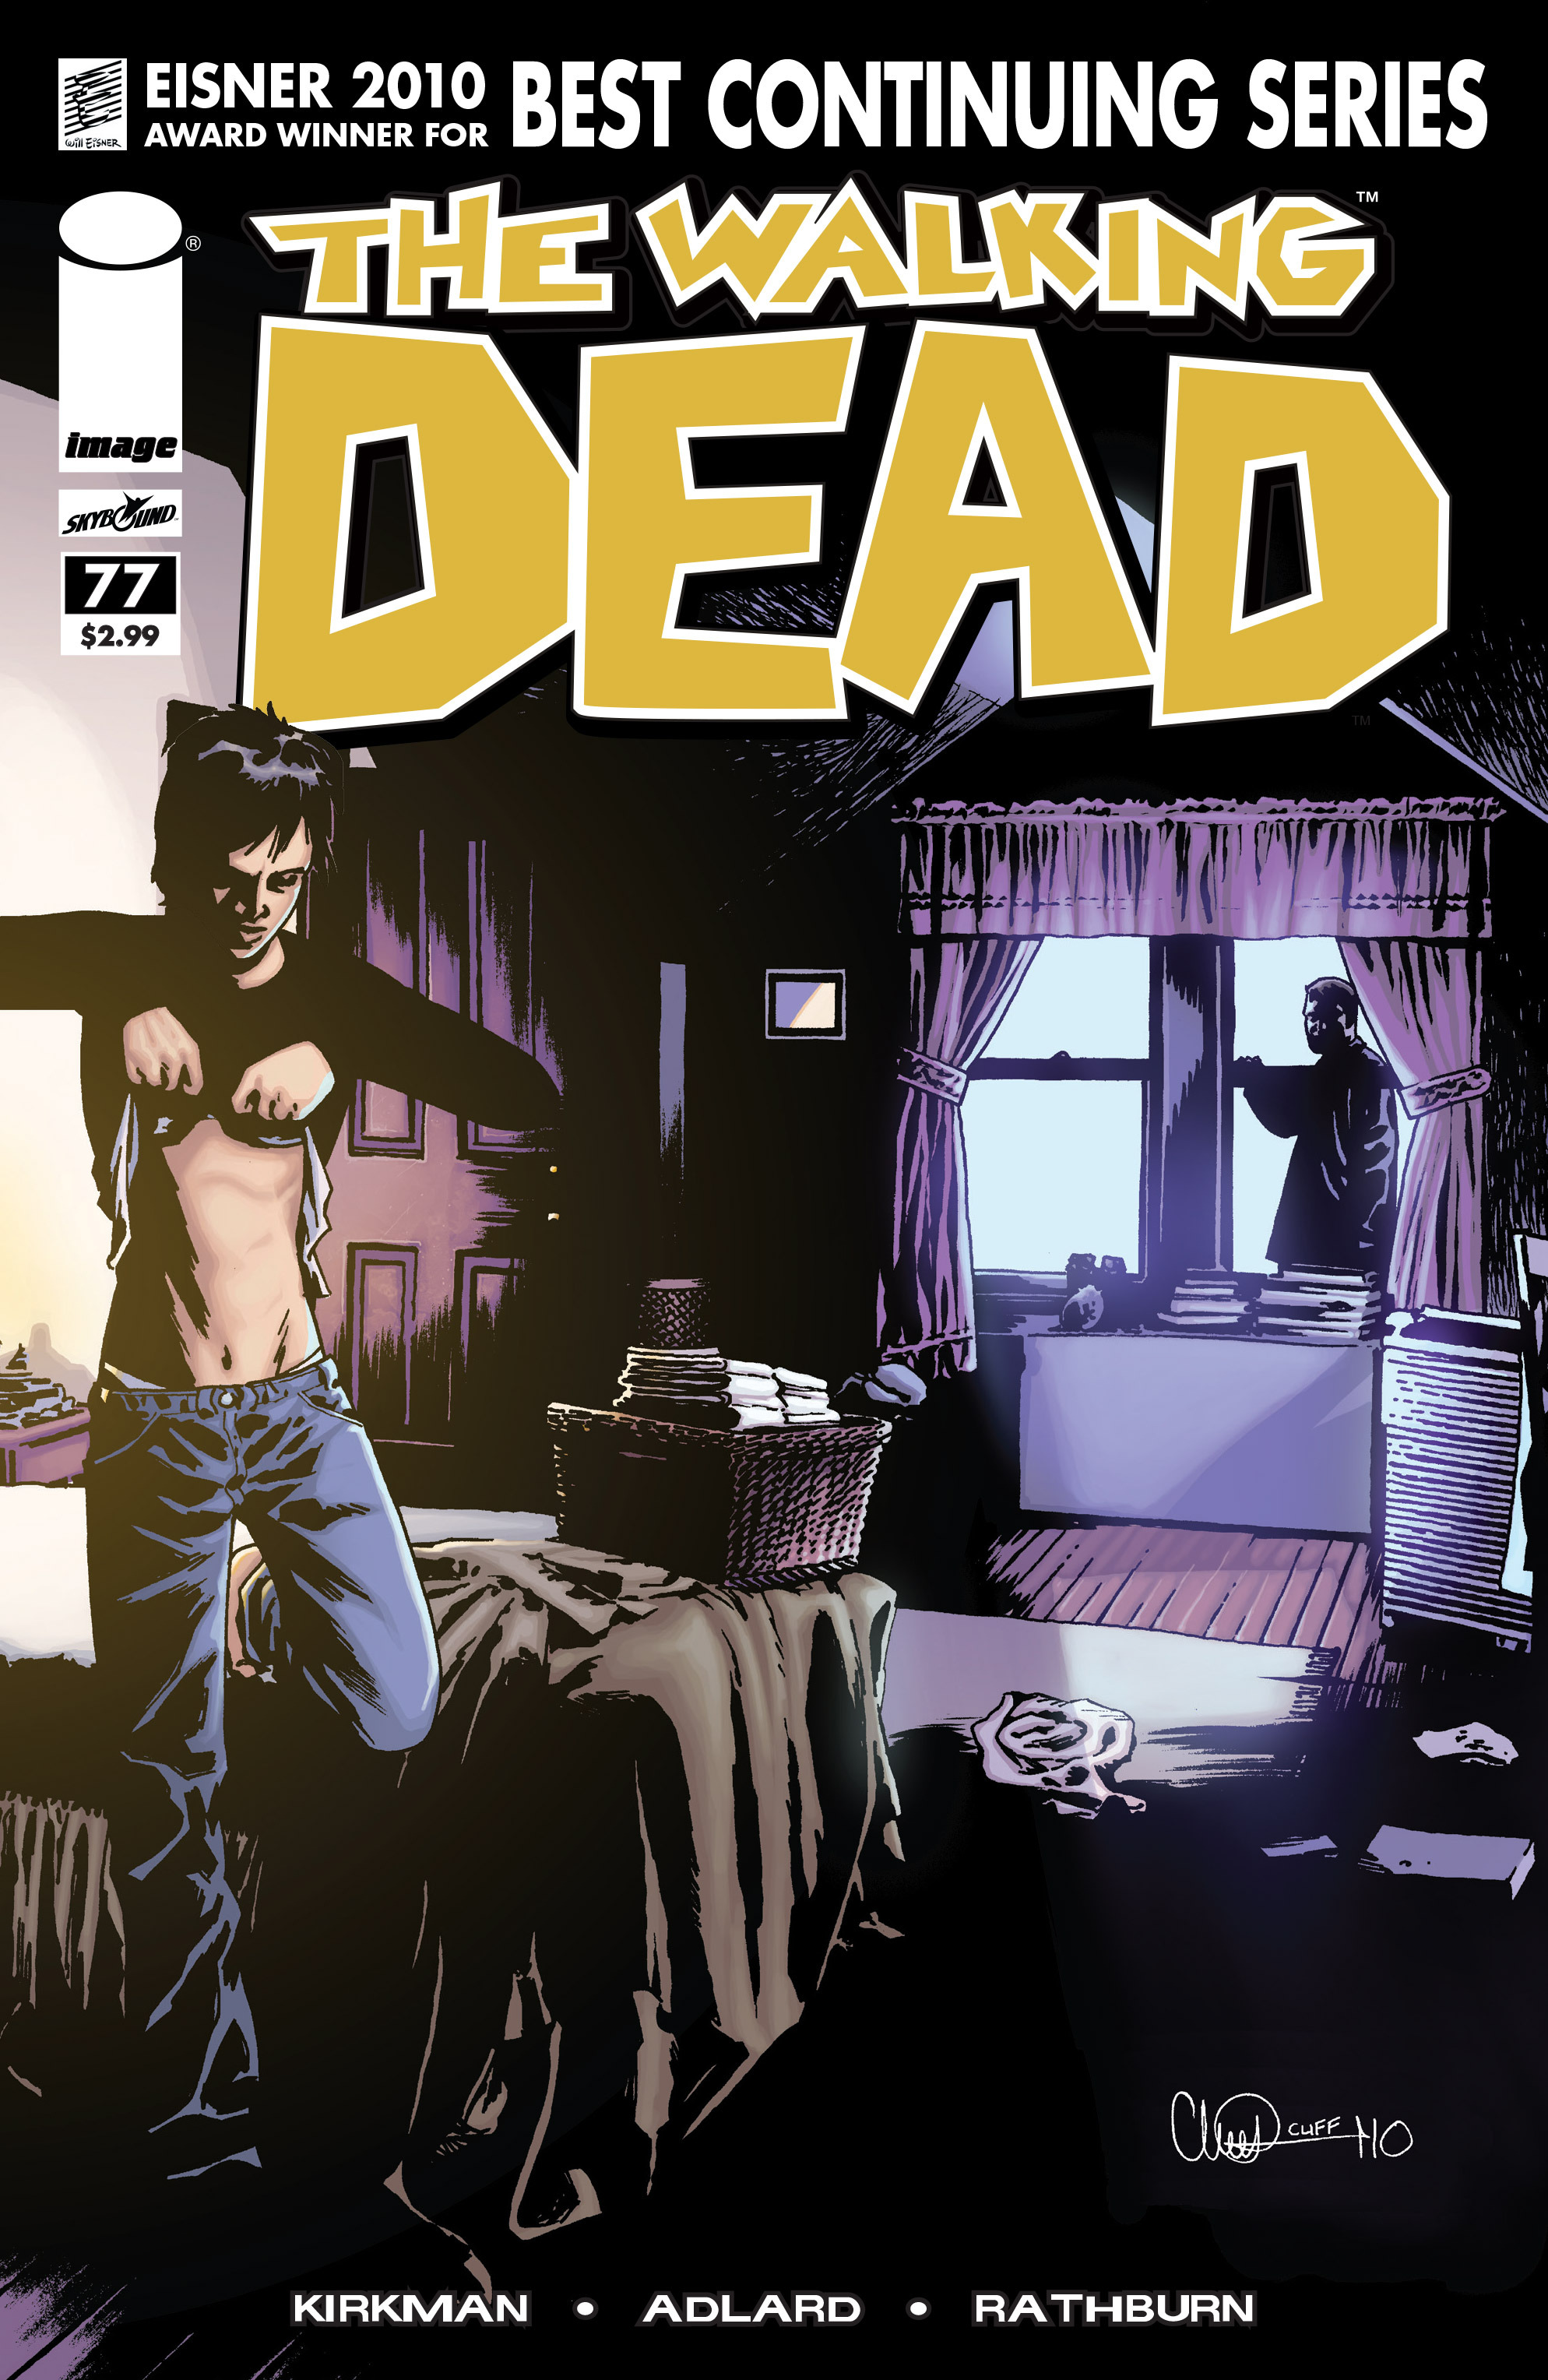 The Walking Dead 77 Page 1